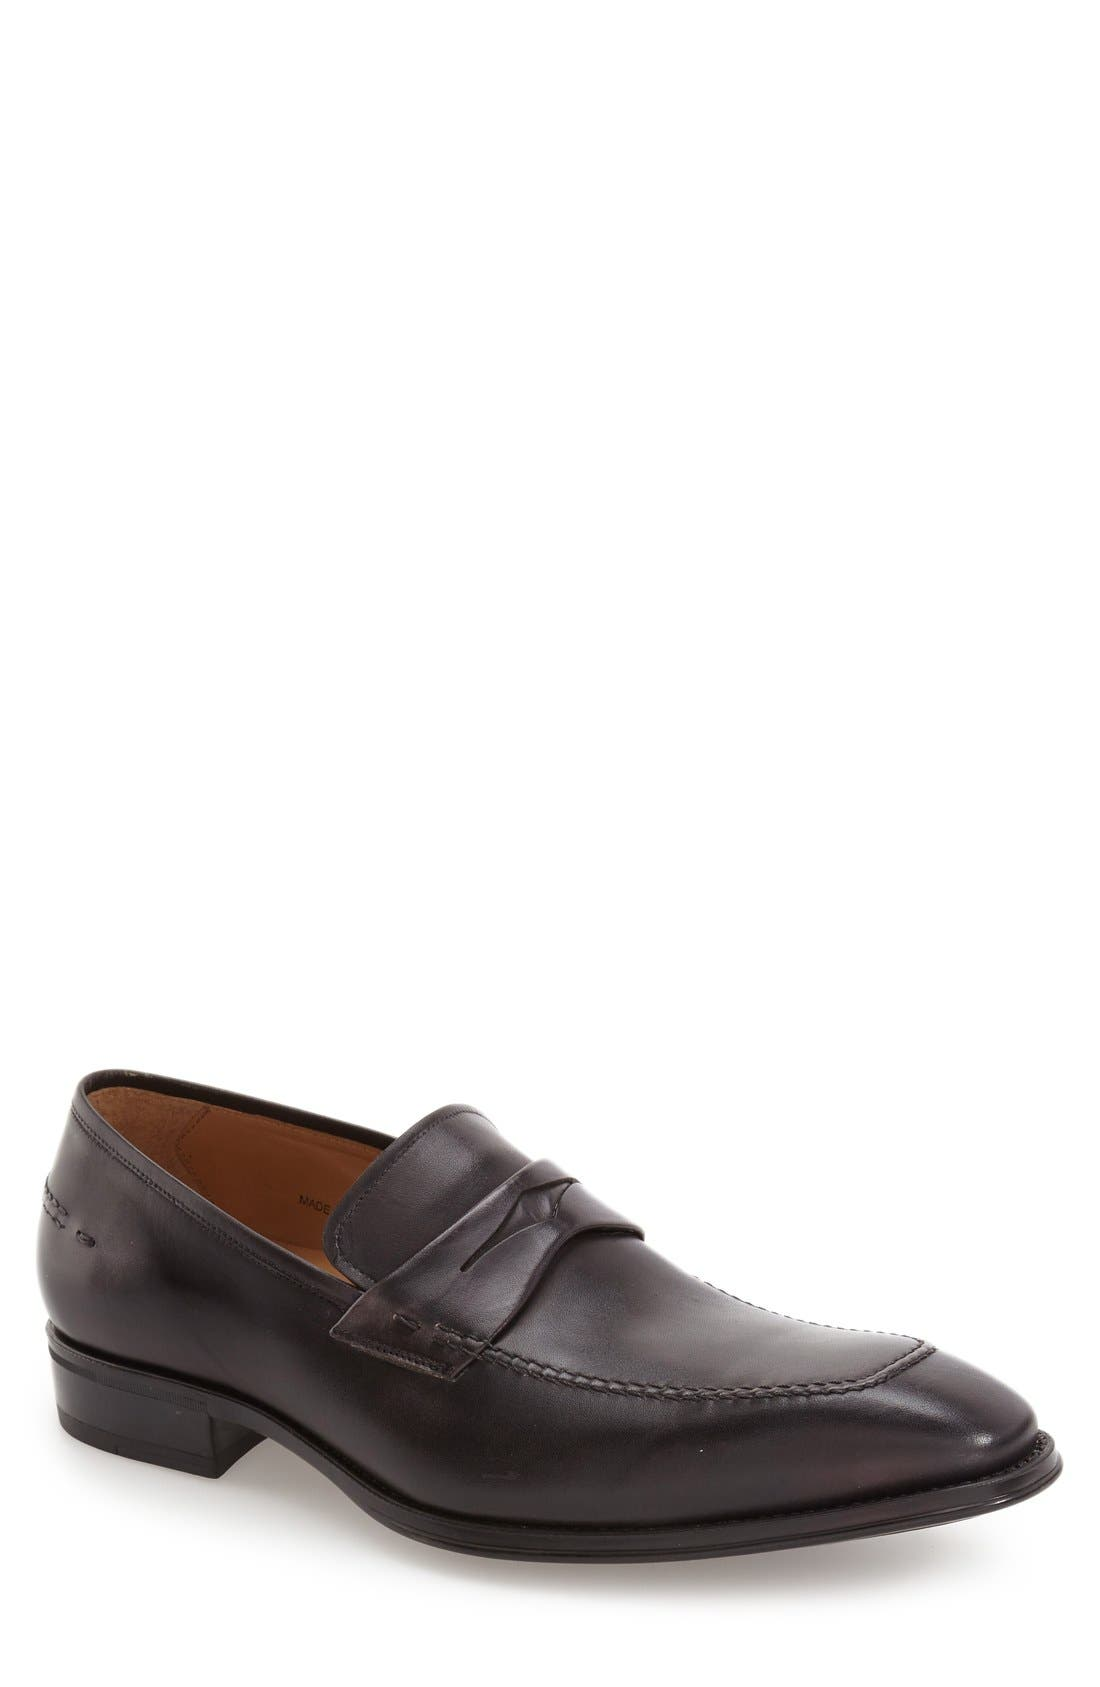 'Trento' Penny Loafer,                             Main thumbnail 1, color,